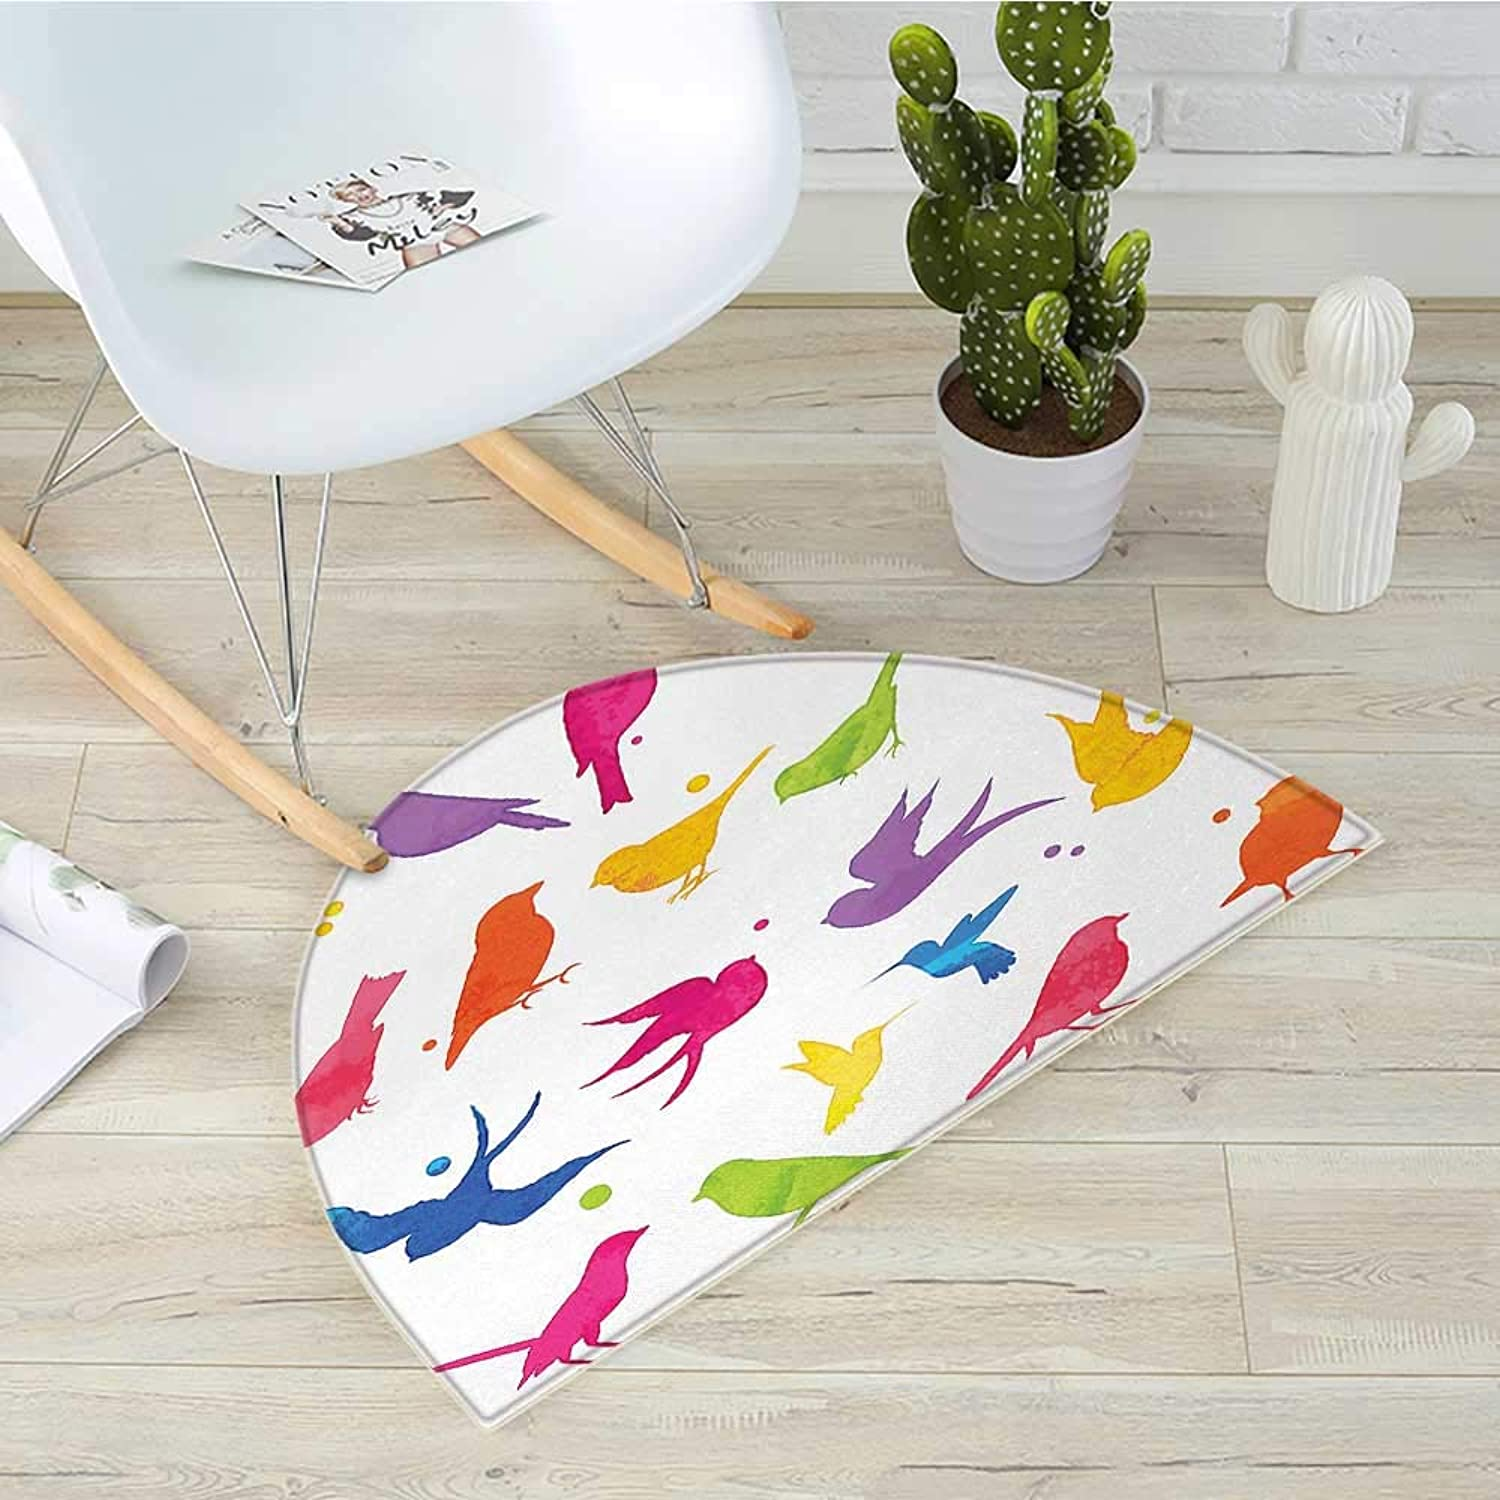 Birds Half Round Door mats colorful Silhouette Sitting and Flying Birds Happiness Buddies Friends Animal Decor Bathroom Mat H 39.3  xD 59  Multicolor